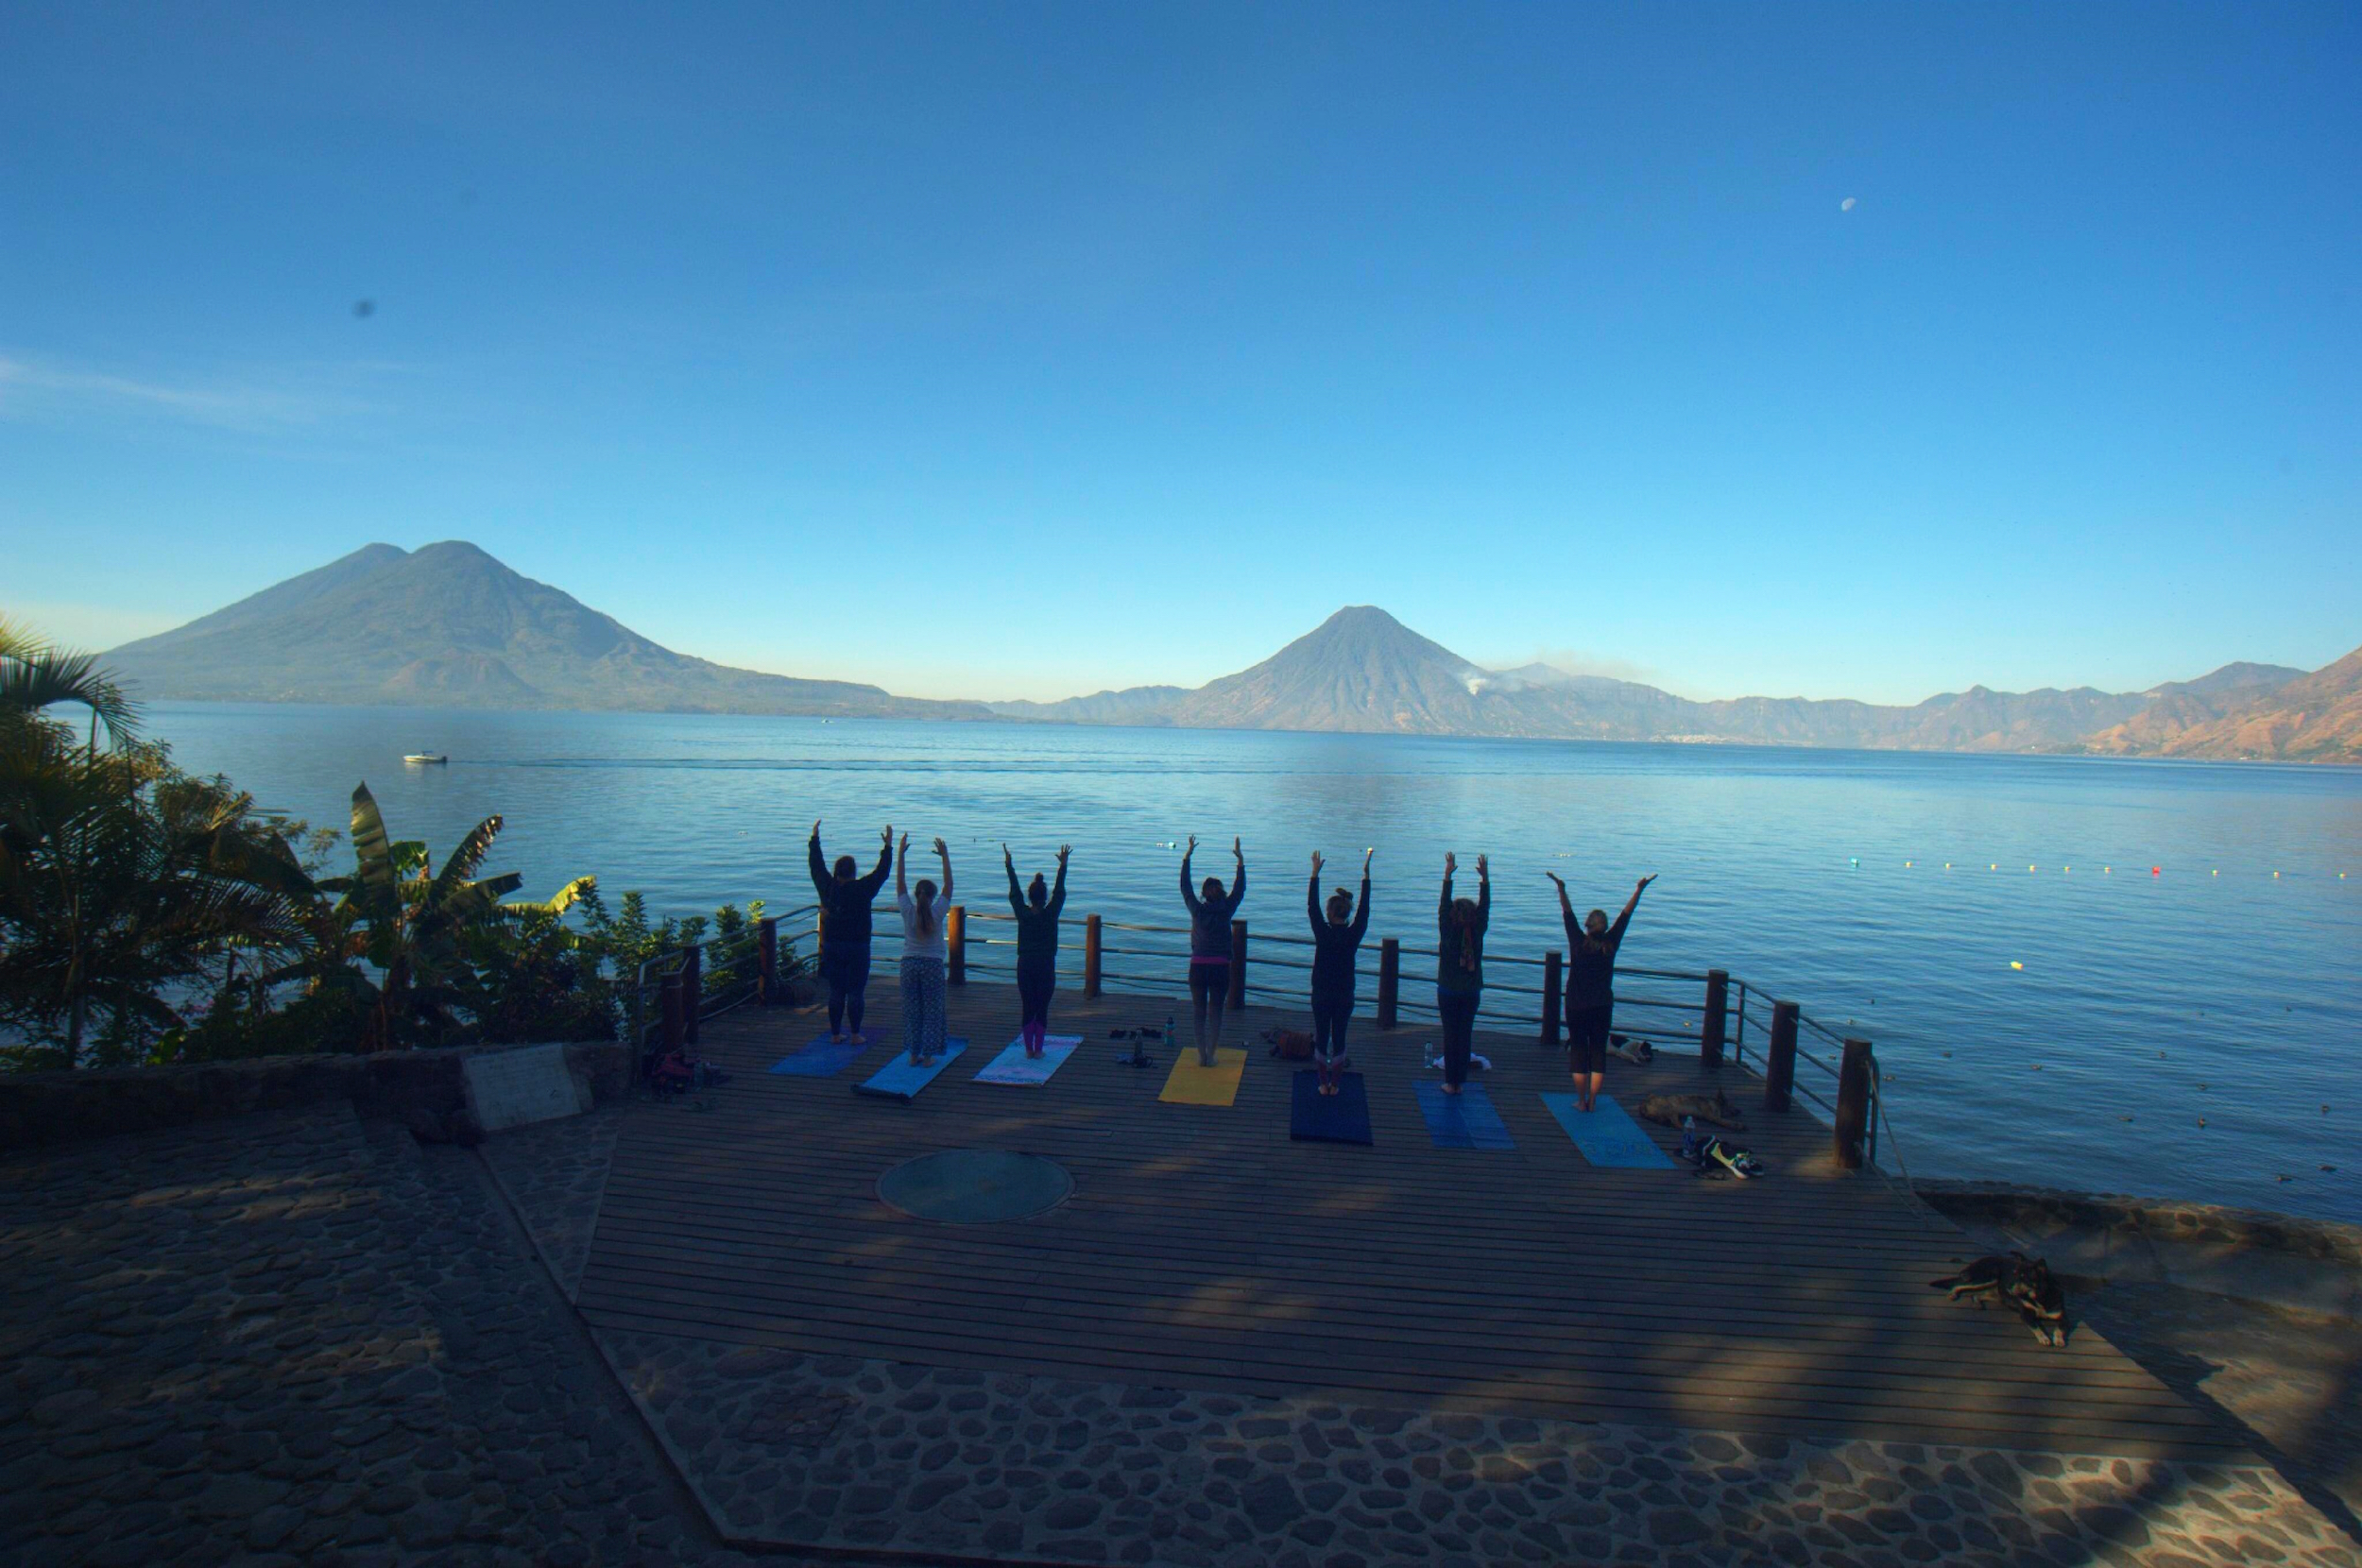 Sunrise yoga at Lake Atitlan, Guatemala